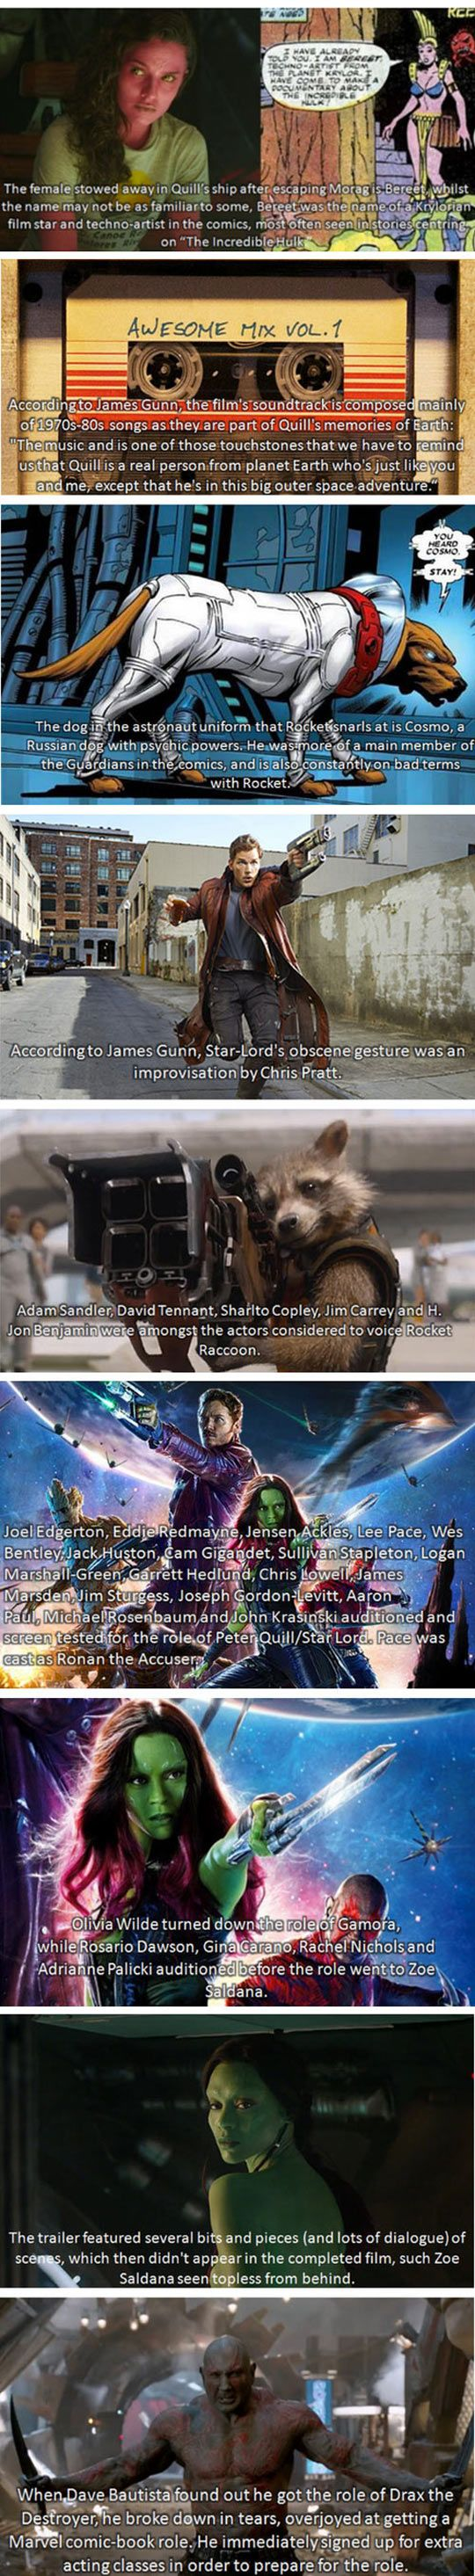 cool-Guardians-Galaxy-Facts-Mix-Quill